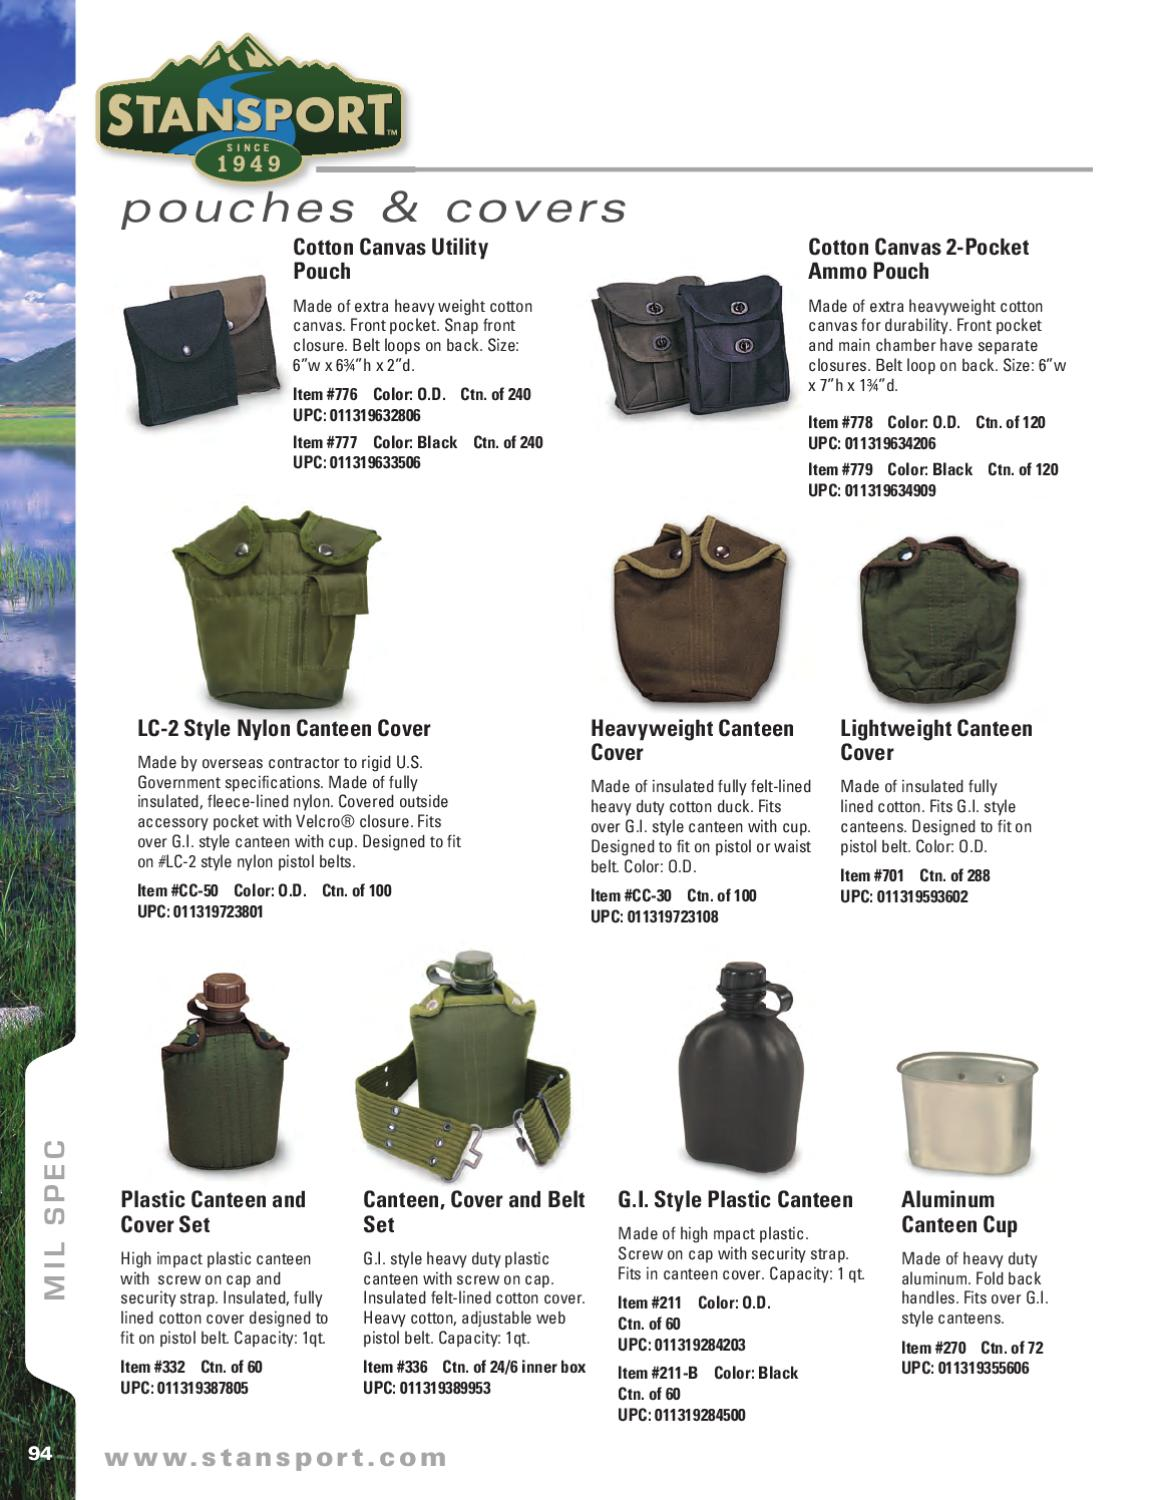 Stansport Catalog 2012 by Stansport - issuu